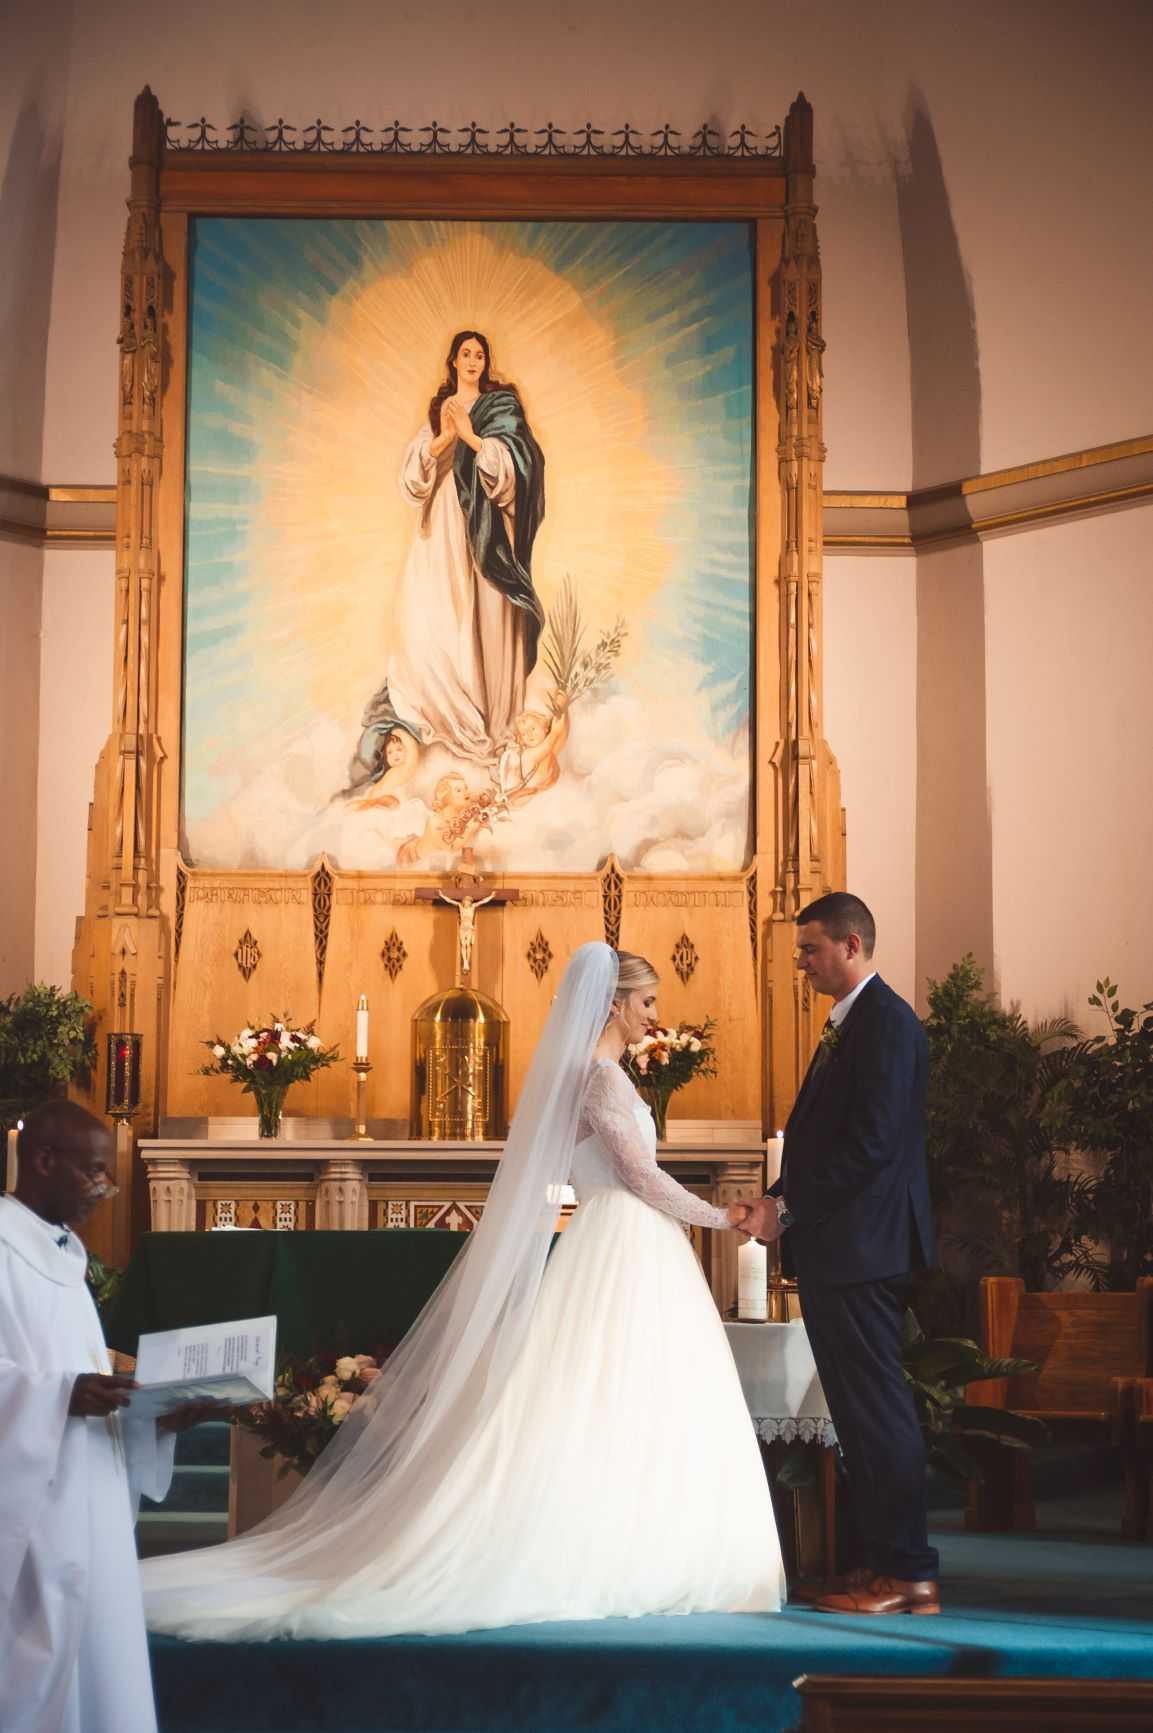 A photo of the wedding of Allie (Robinson) & Allan Runions, November 2019 standing in front of the altar